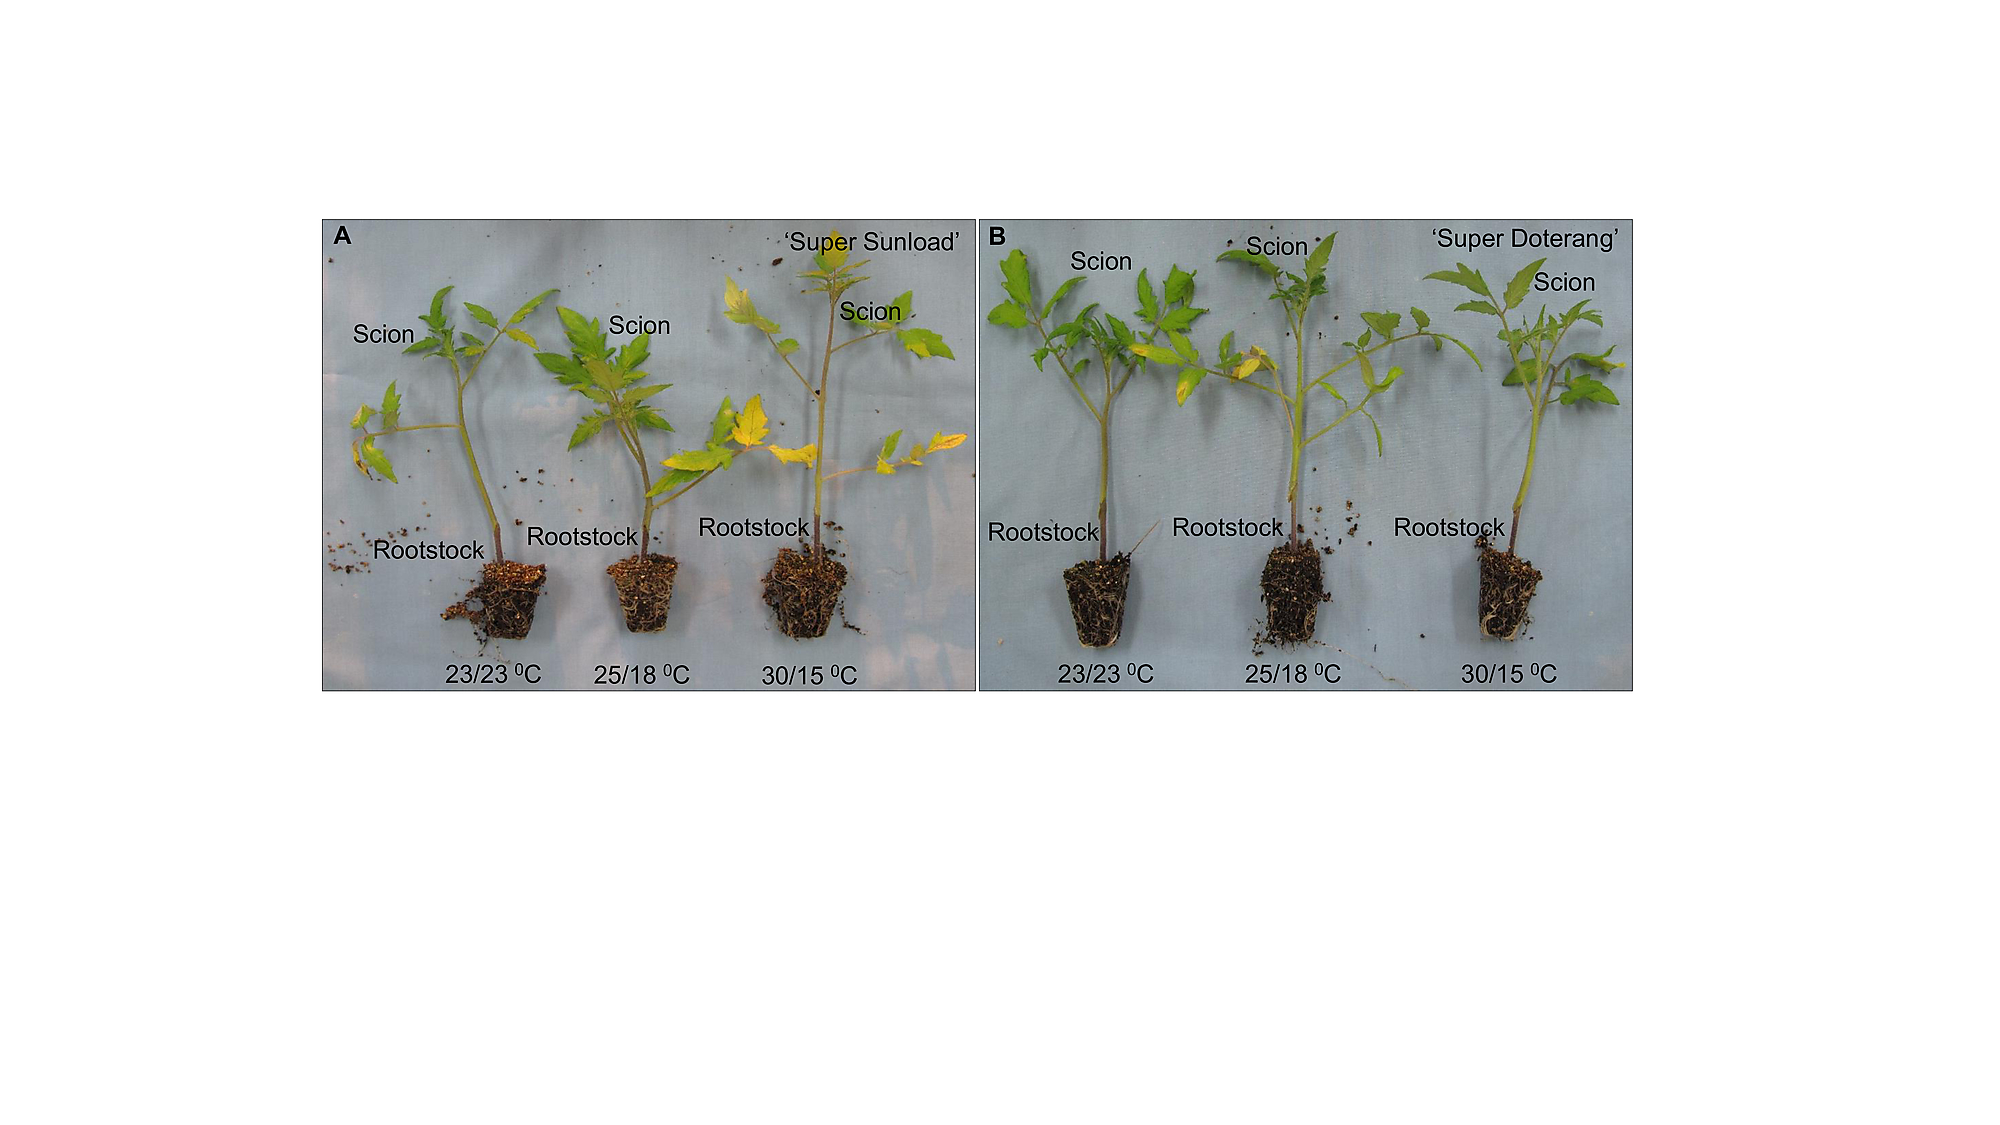 Physiological And Proteomic Investigations To Study The Response Of Prune Tomatoes Diagram Tomato Plant S1 Fig Representative Images Grafted Plants